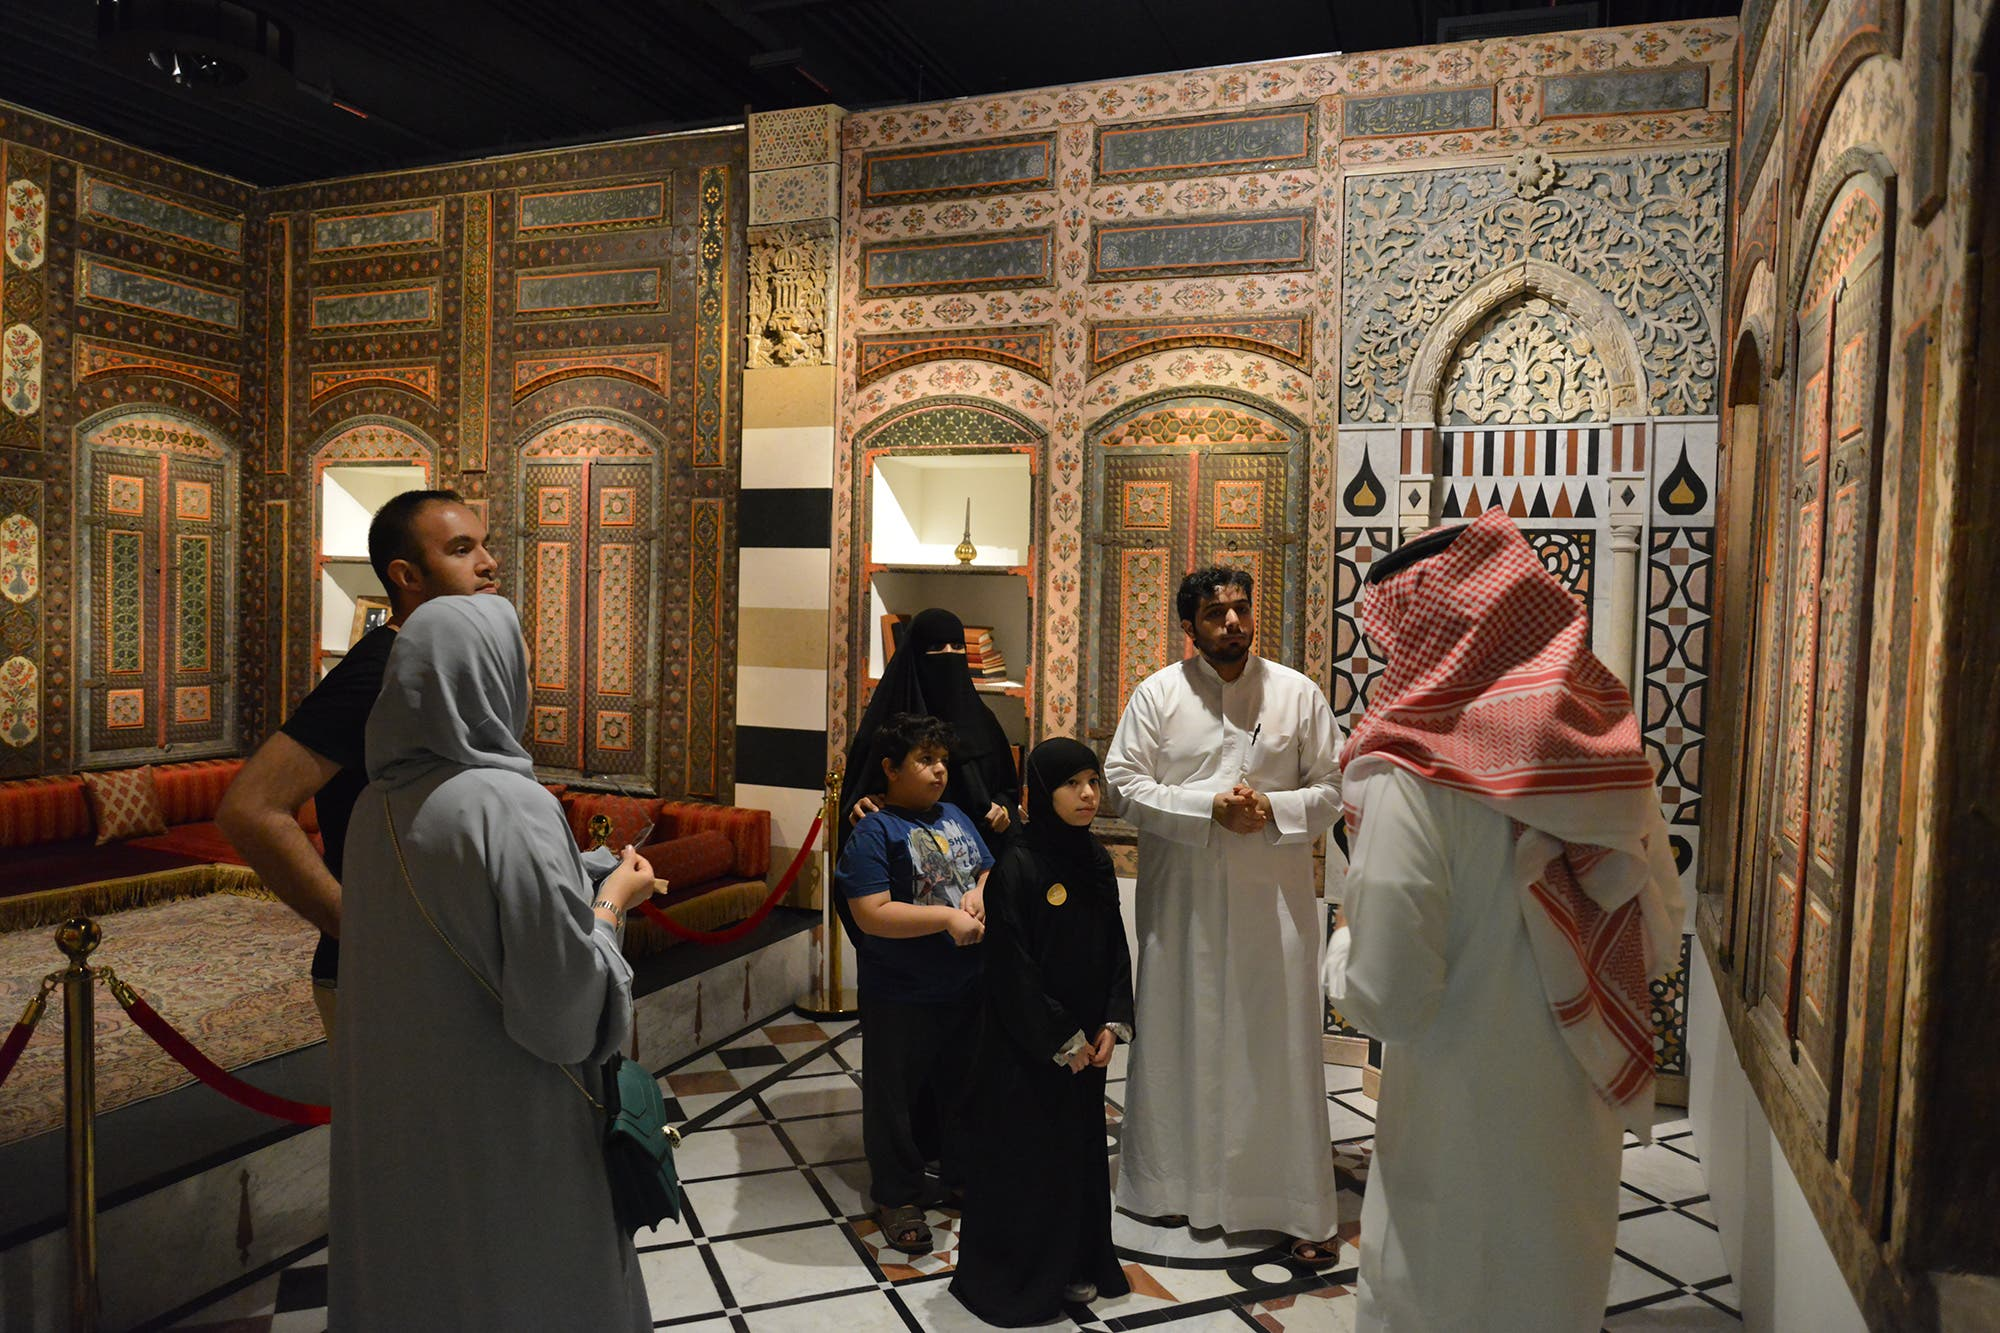 damascene room at saudi museum. (Supplied)